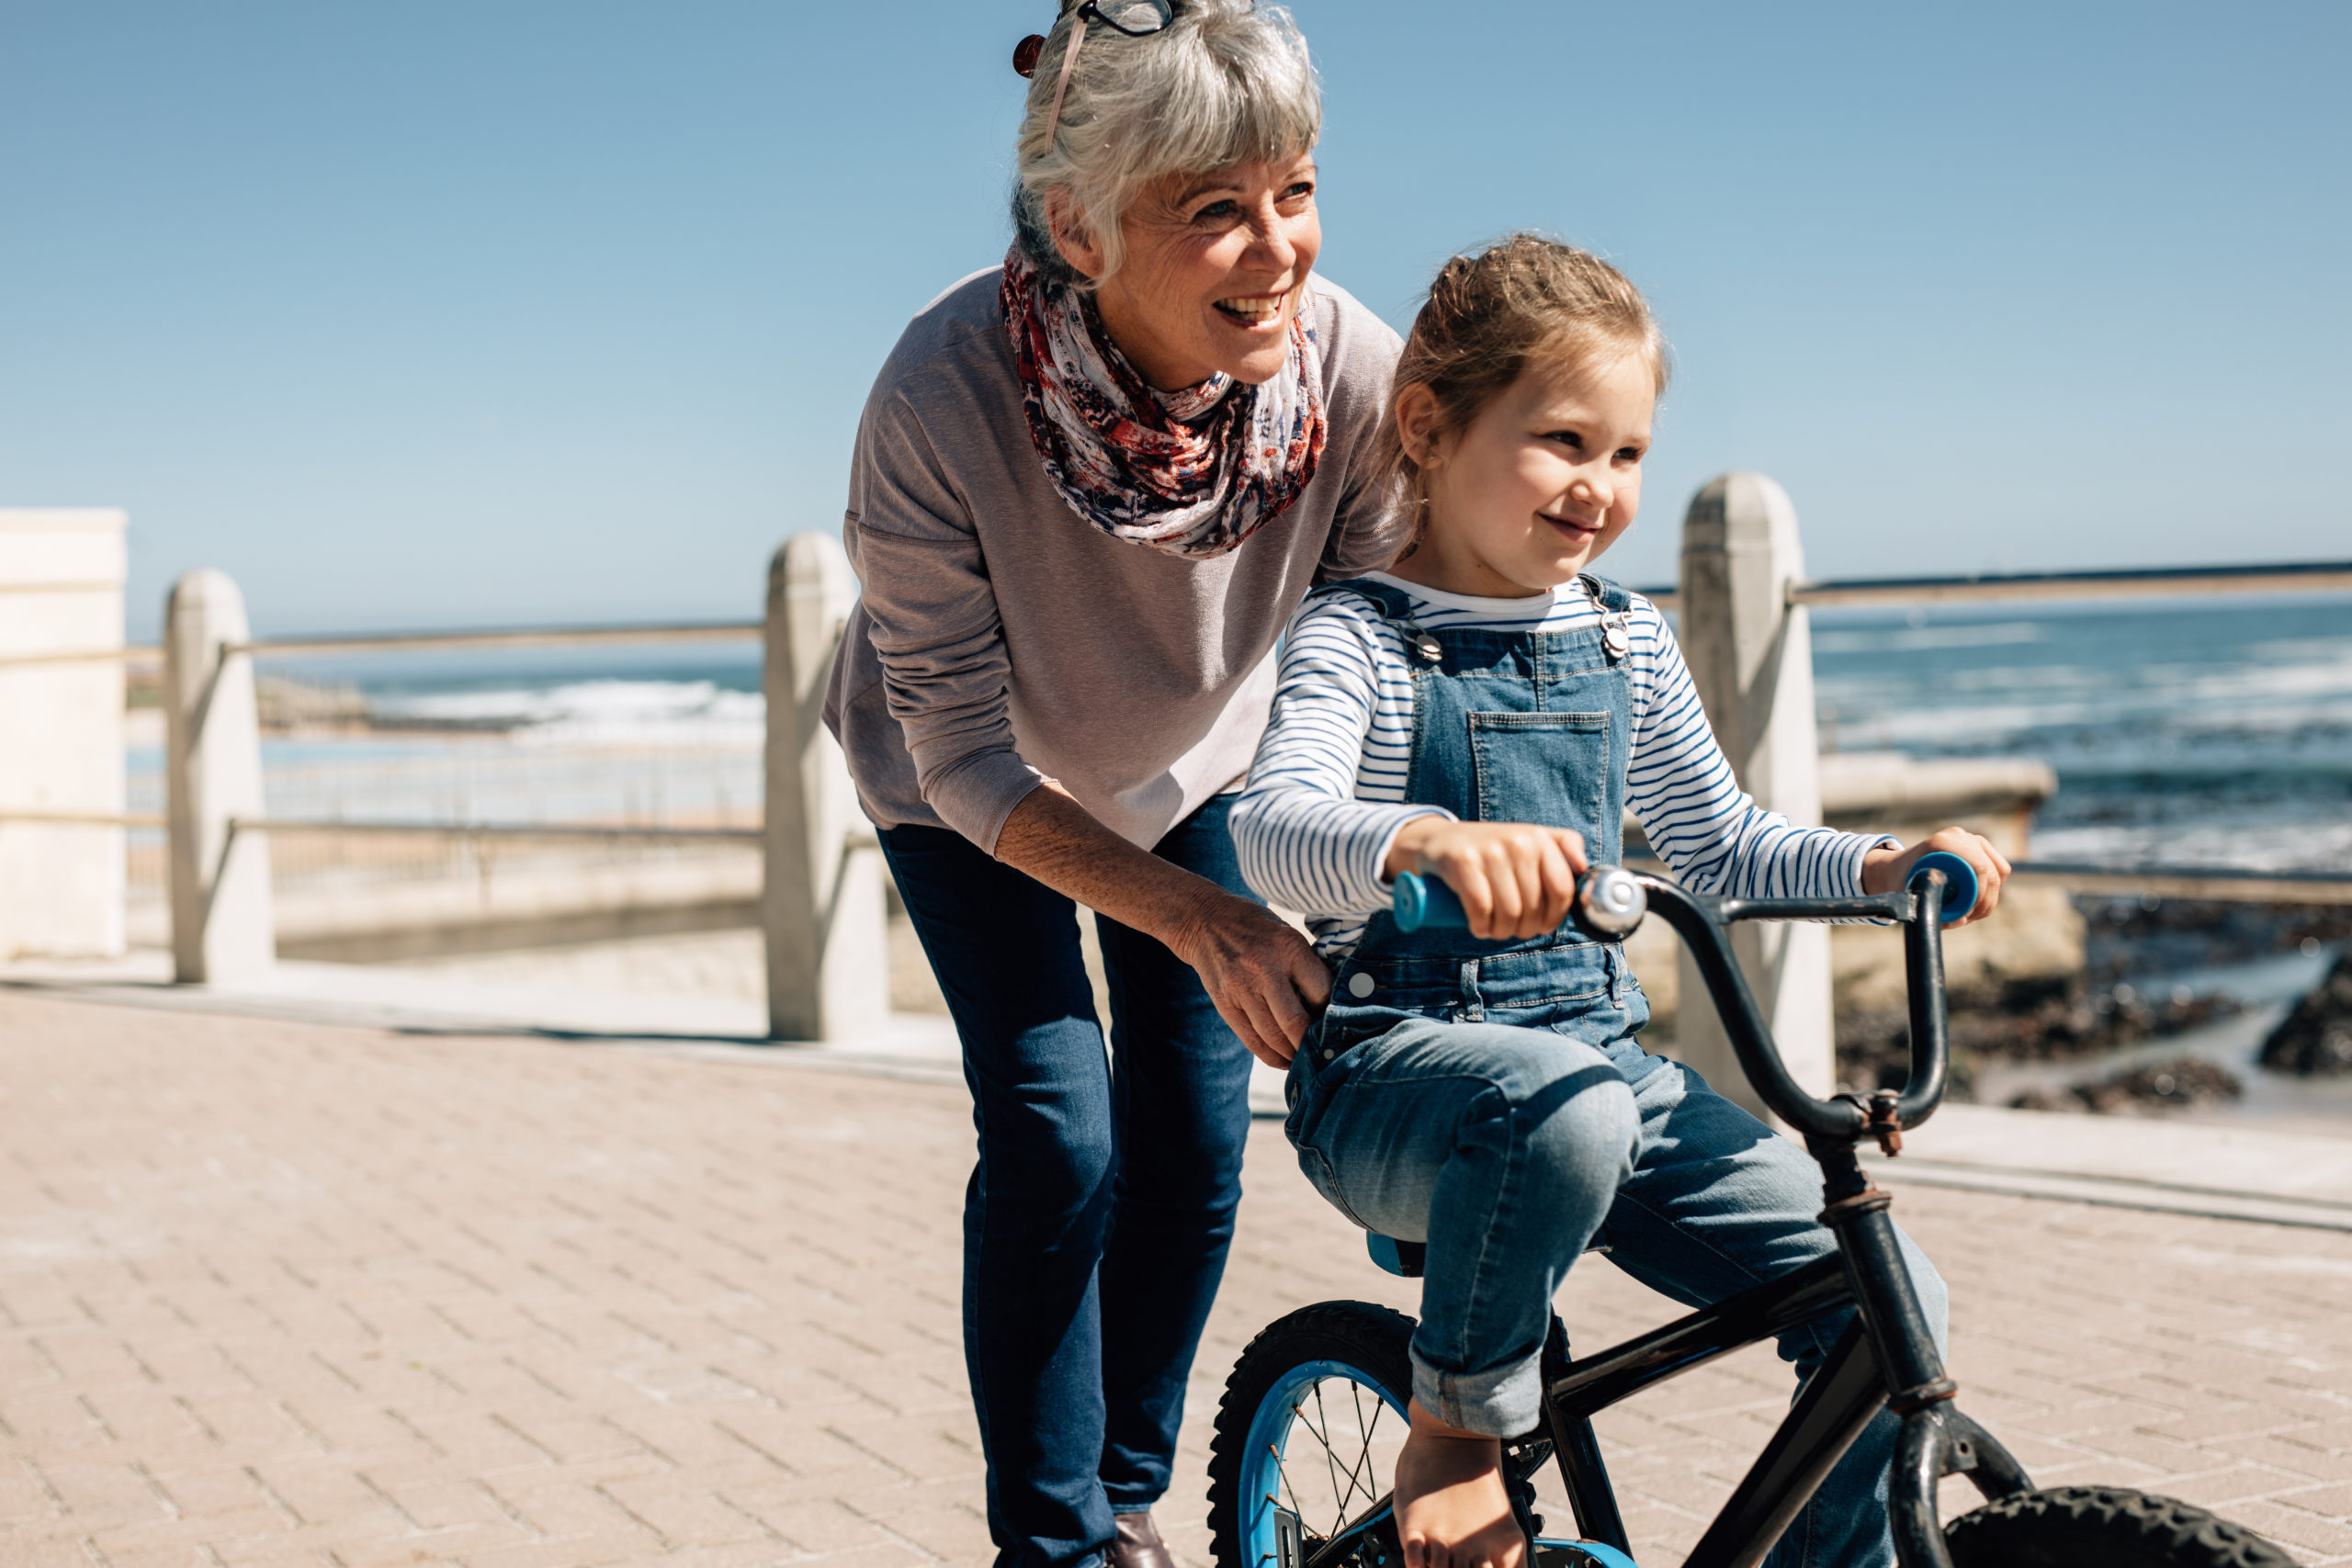 Girl trying to ride a bicycle with the help of her grandmother at seaside promenade. Senior woman holding the bicycle while her granddaughter learns to ride it.